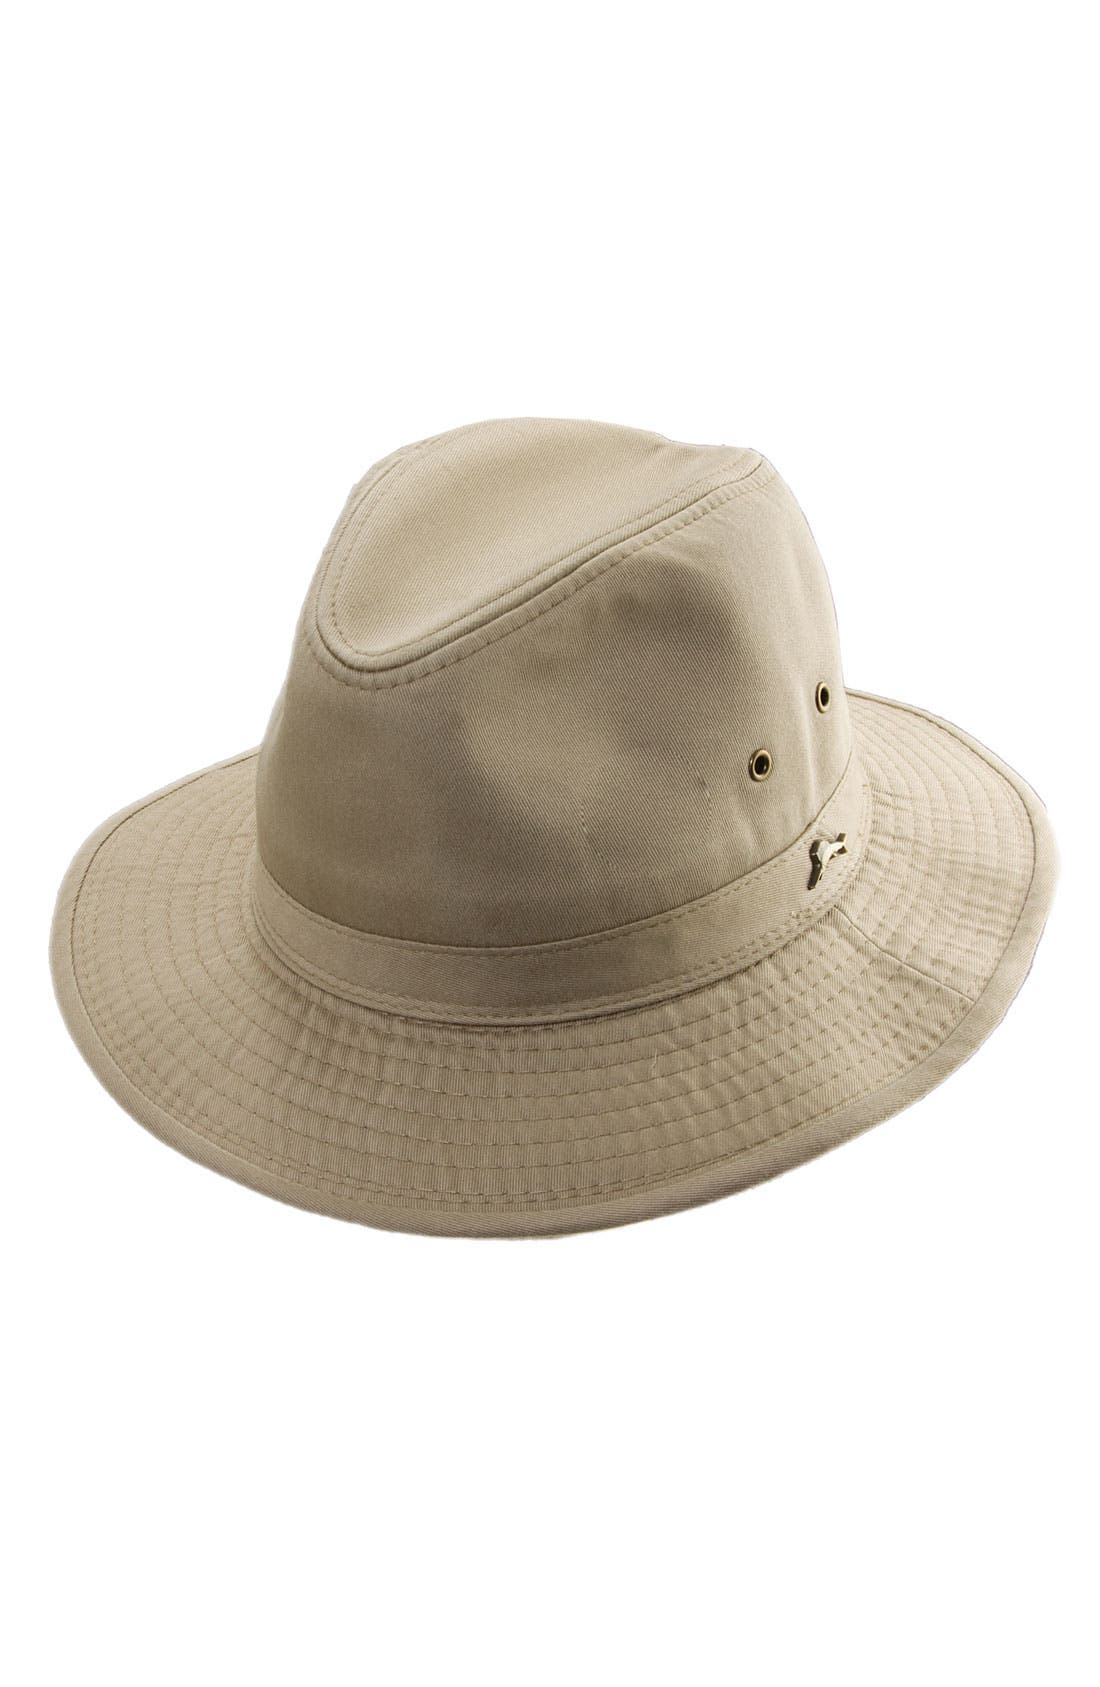 Main Image - Tommy Bahama Cotton Safari Bucket Hat